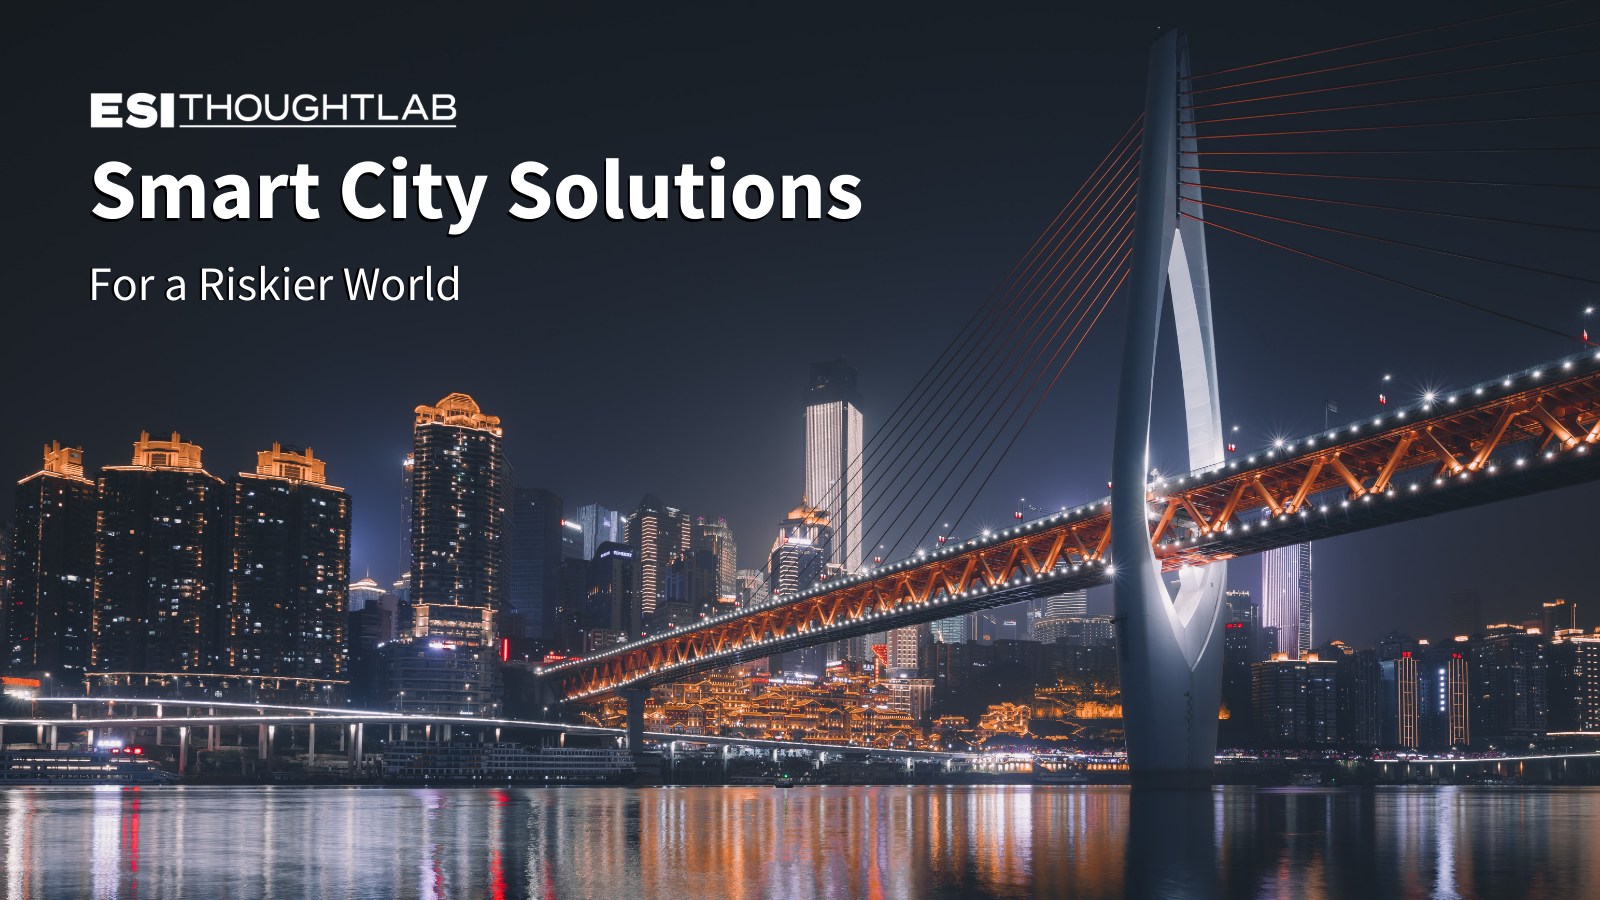 Smart City Solutions for a Riskier World